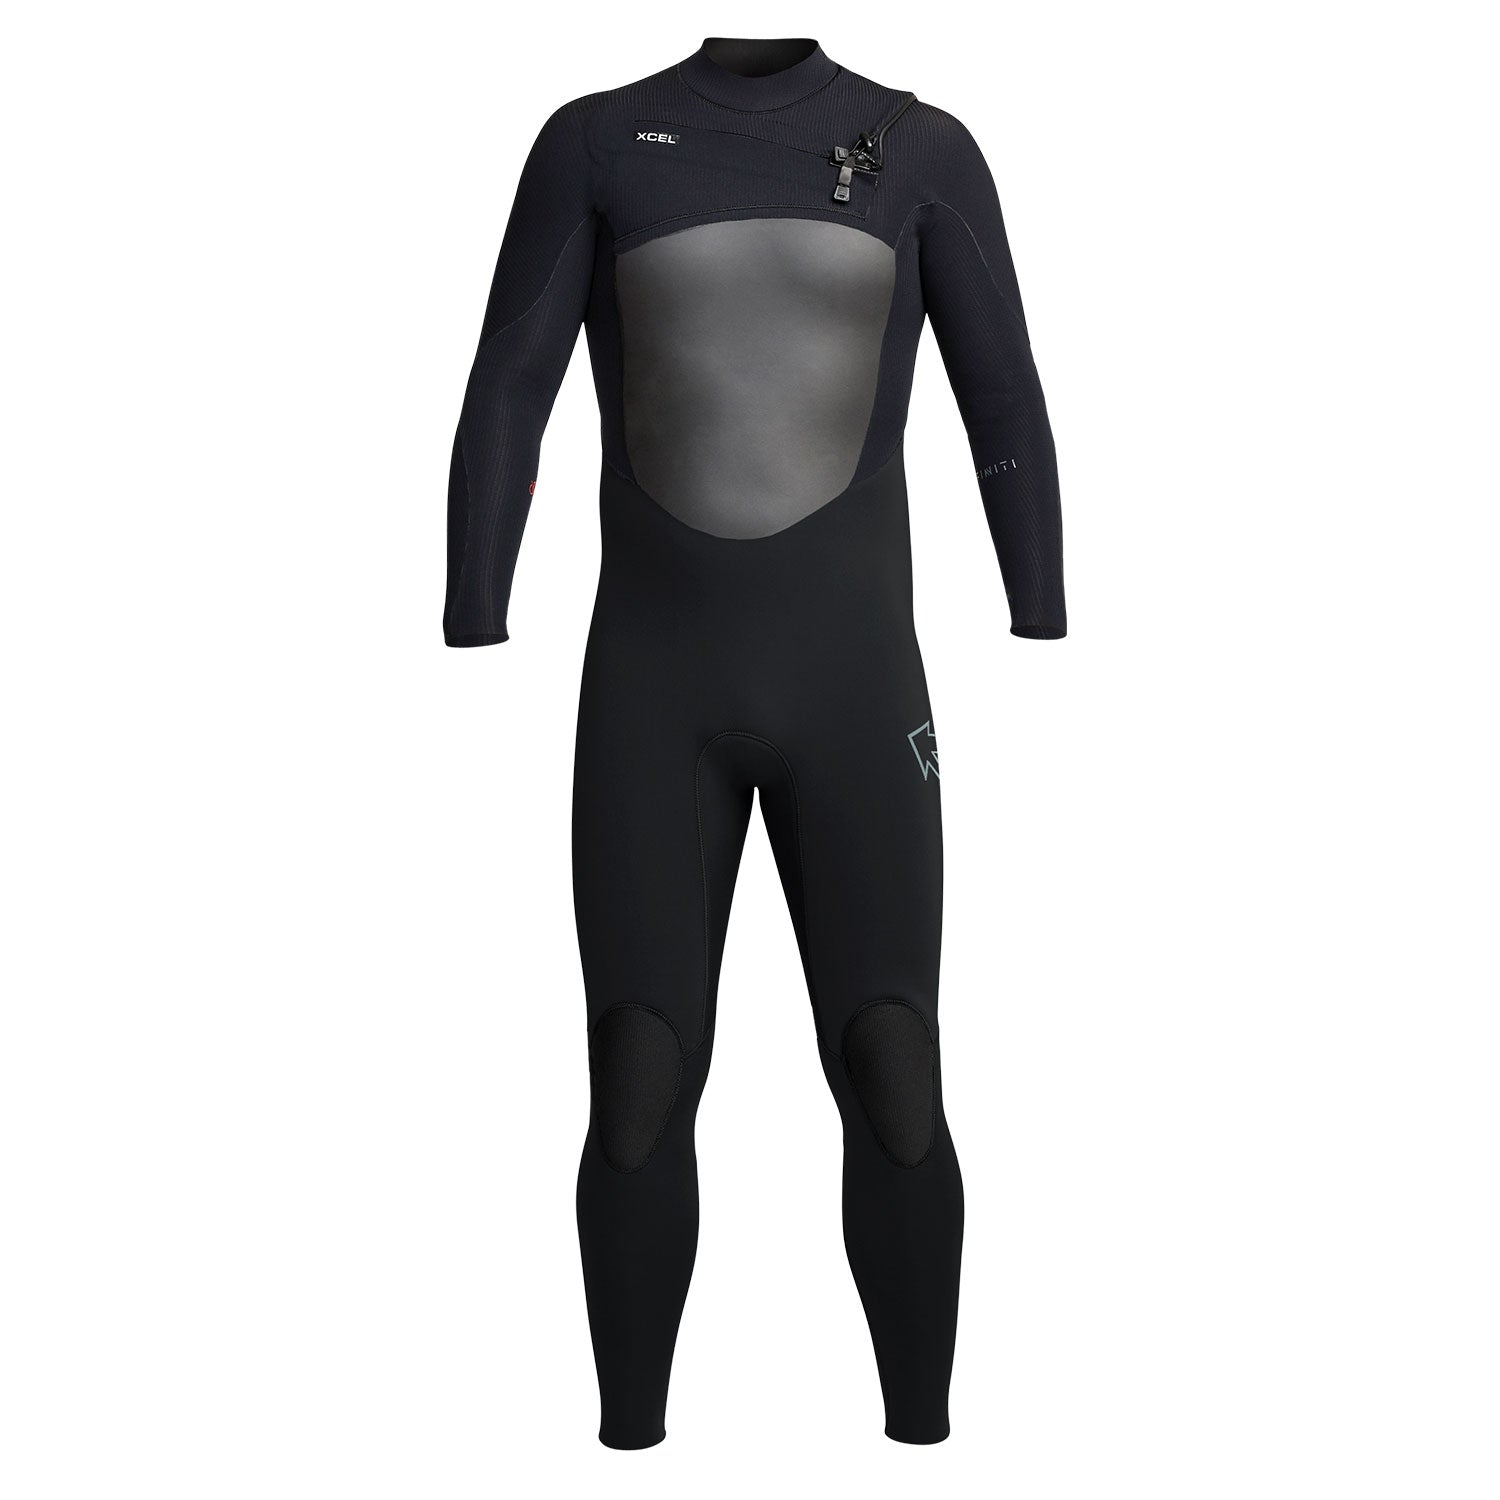 Xcel 5/4 mm Infiniti Chest Zip Wetsuit - Black